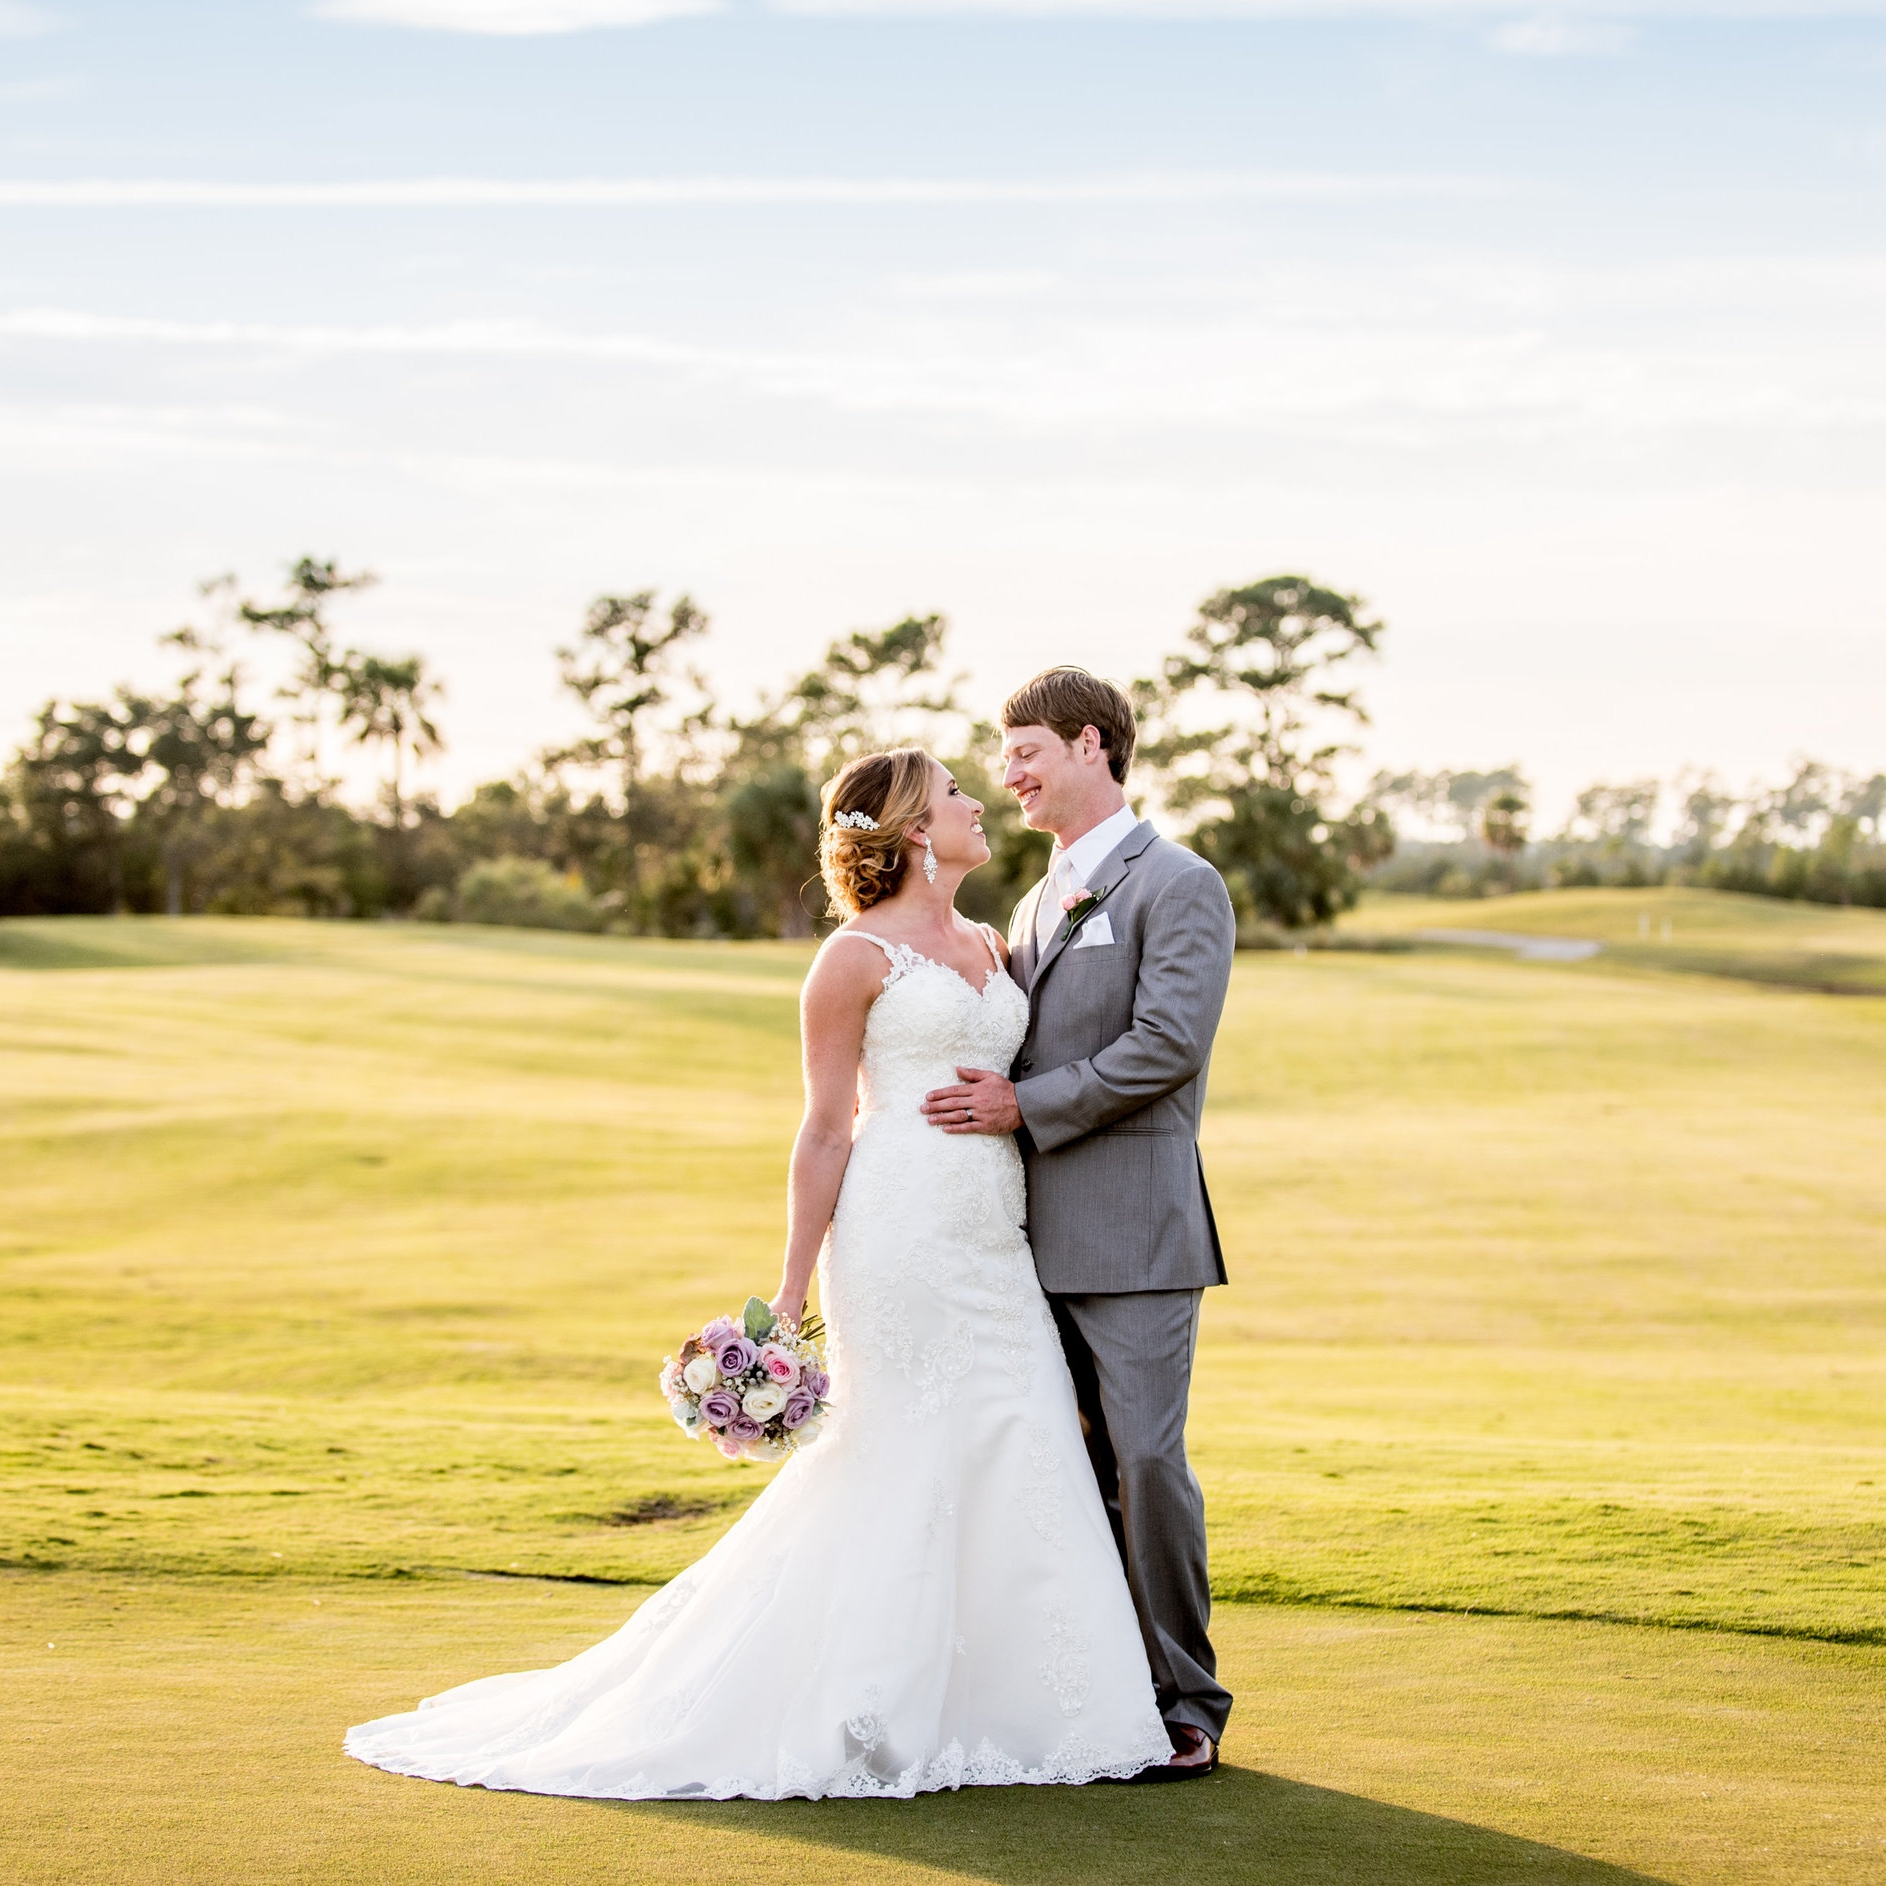 Photos by   Dandy Mae Photography  , taken at RiverTowne Country Club.